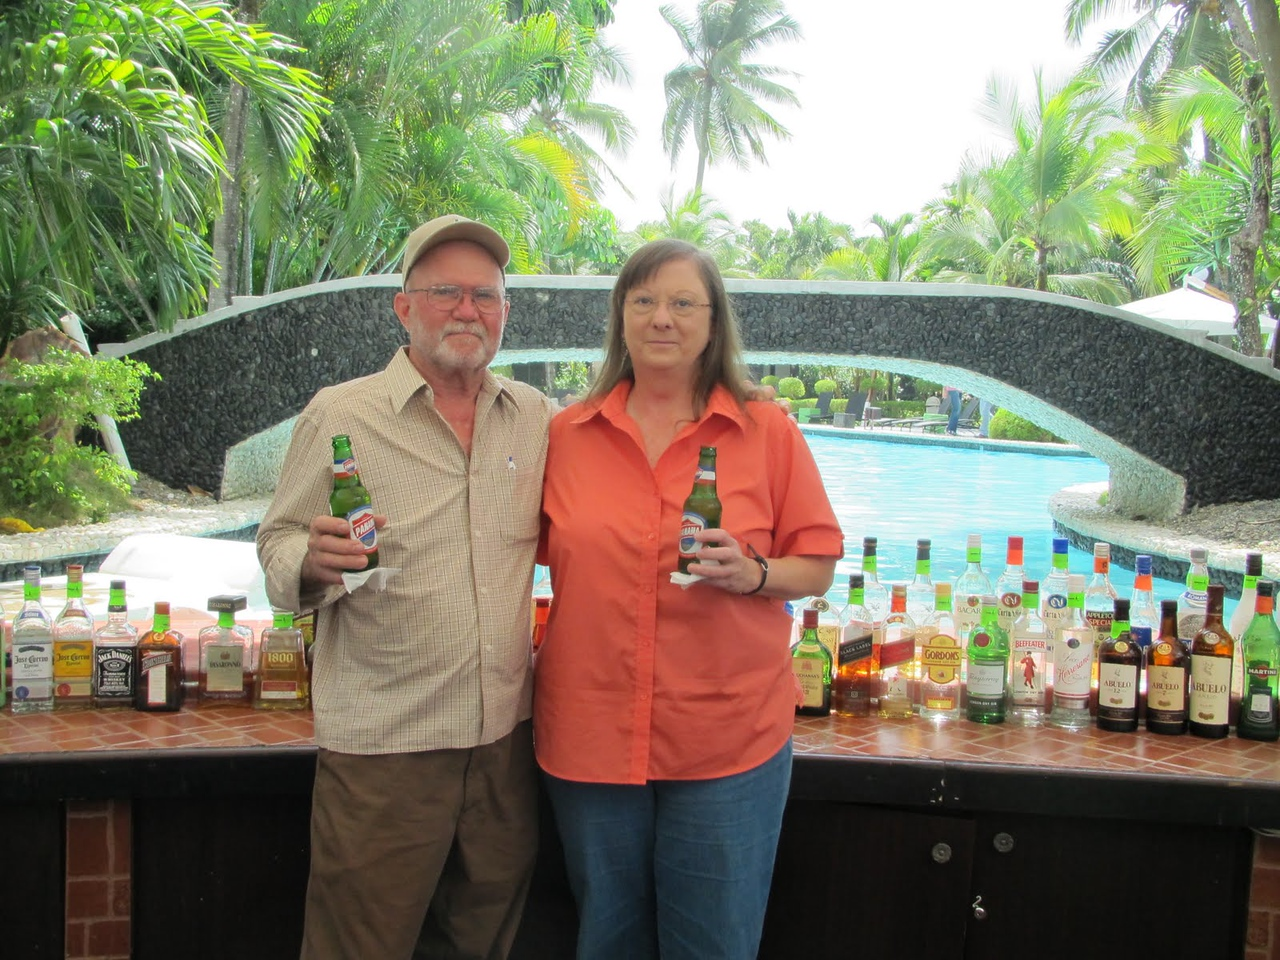 Our unplanned stay in Panama City - nice bar at the hotel!